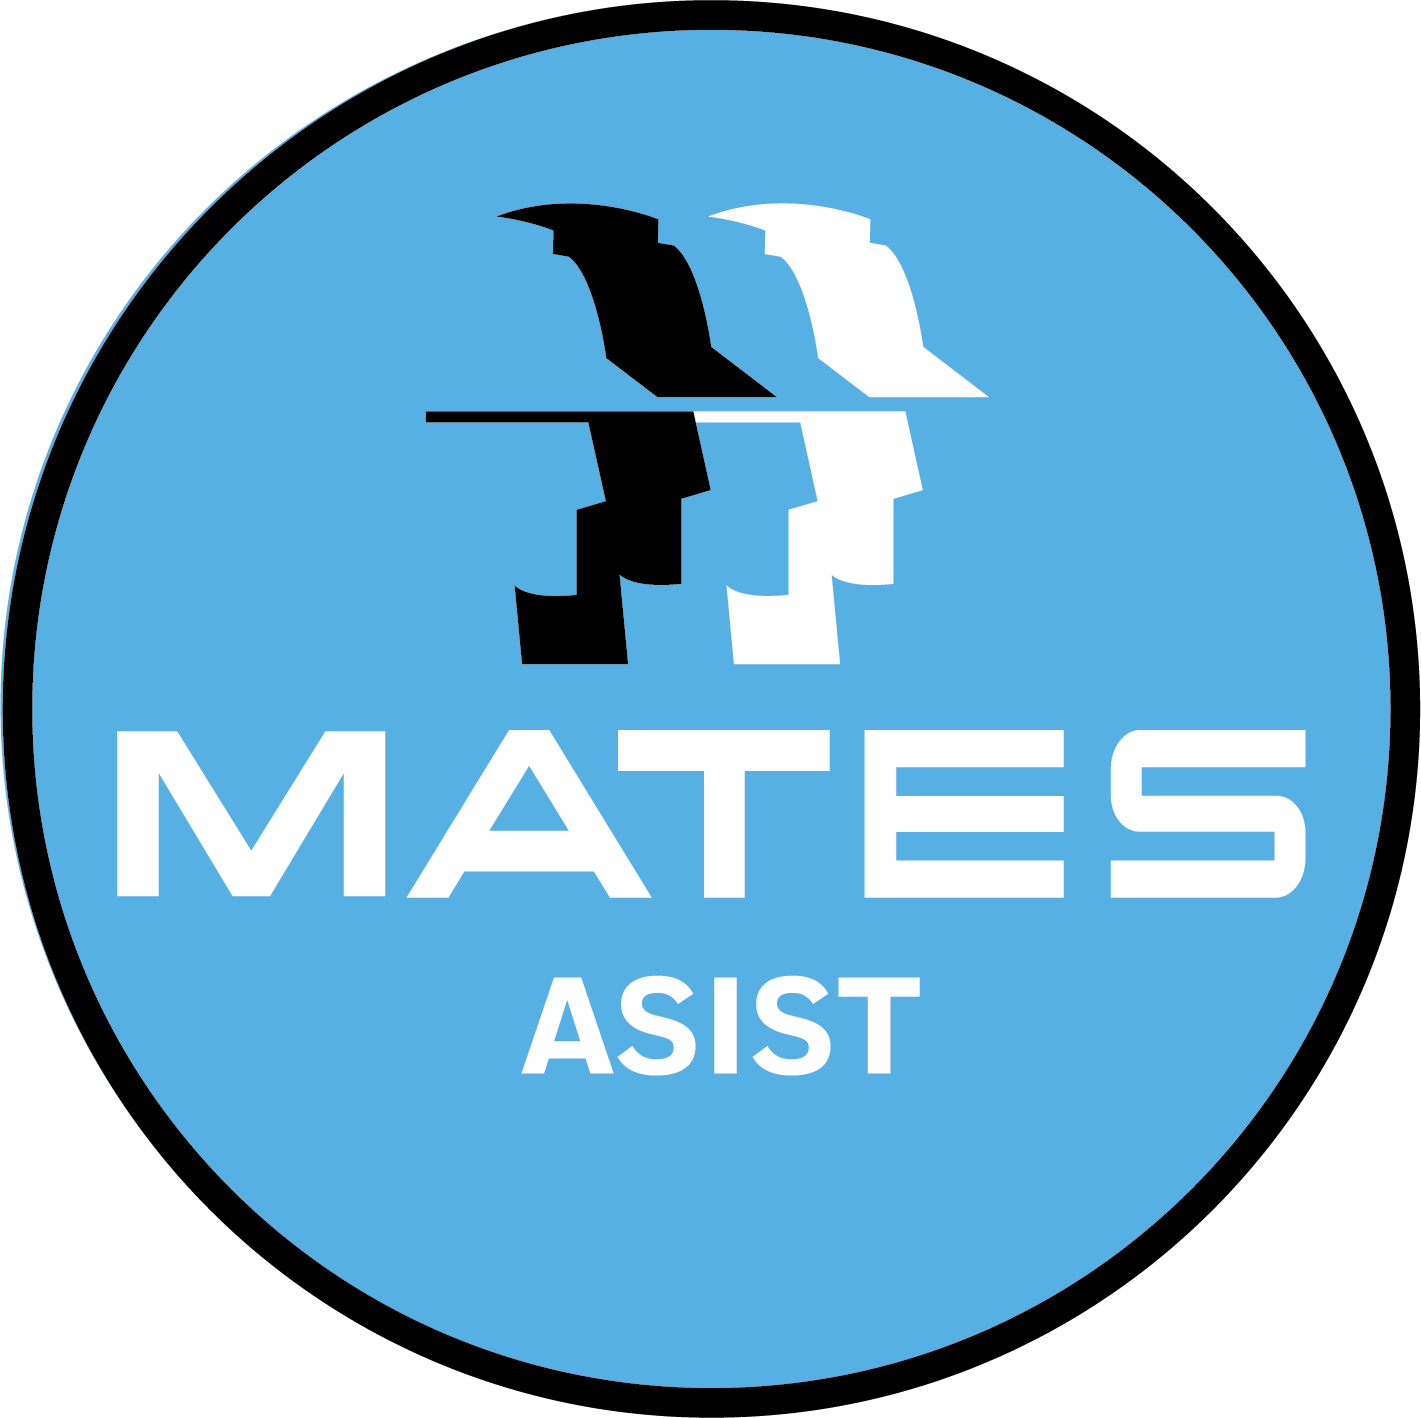 MATES in Construction NZ | MATES Asist